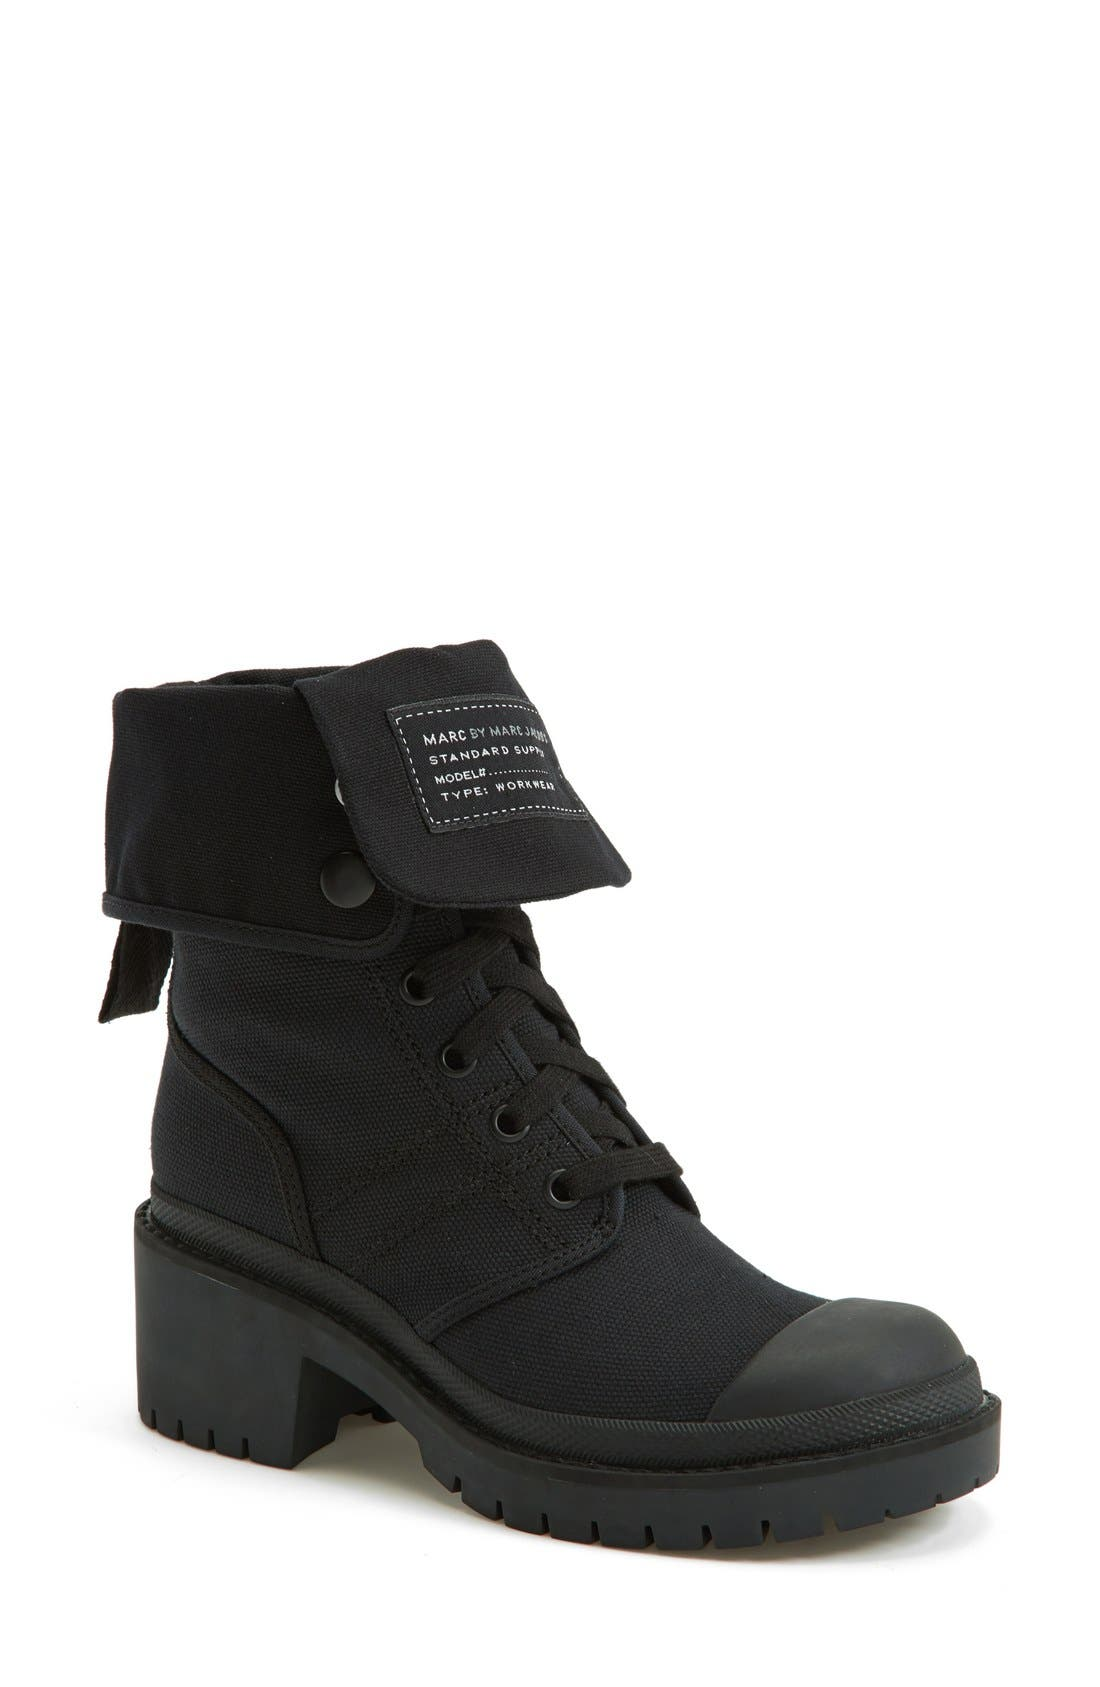 Alternate Image 1 Selected - MARC BY MARC JACOBS Canvas Boot (Women)